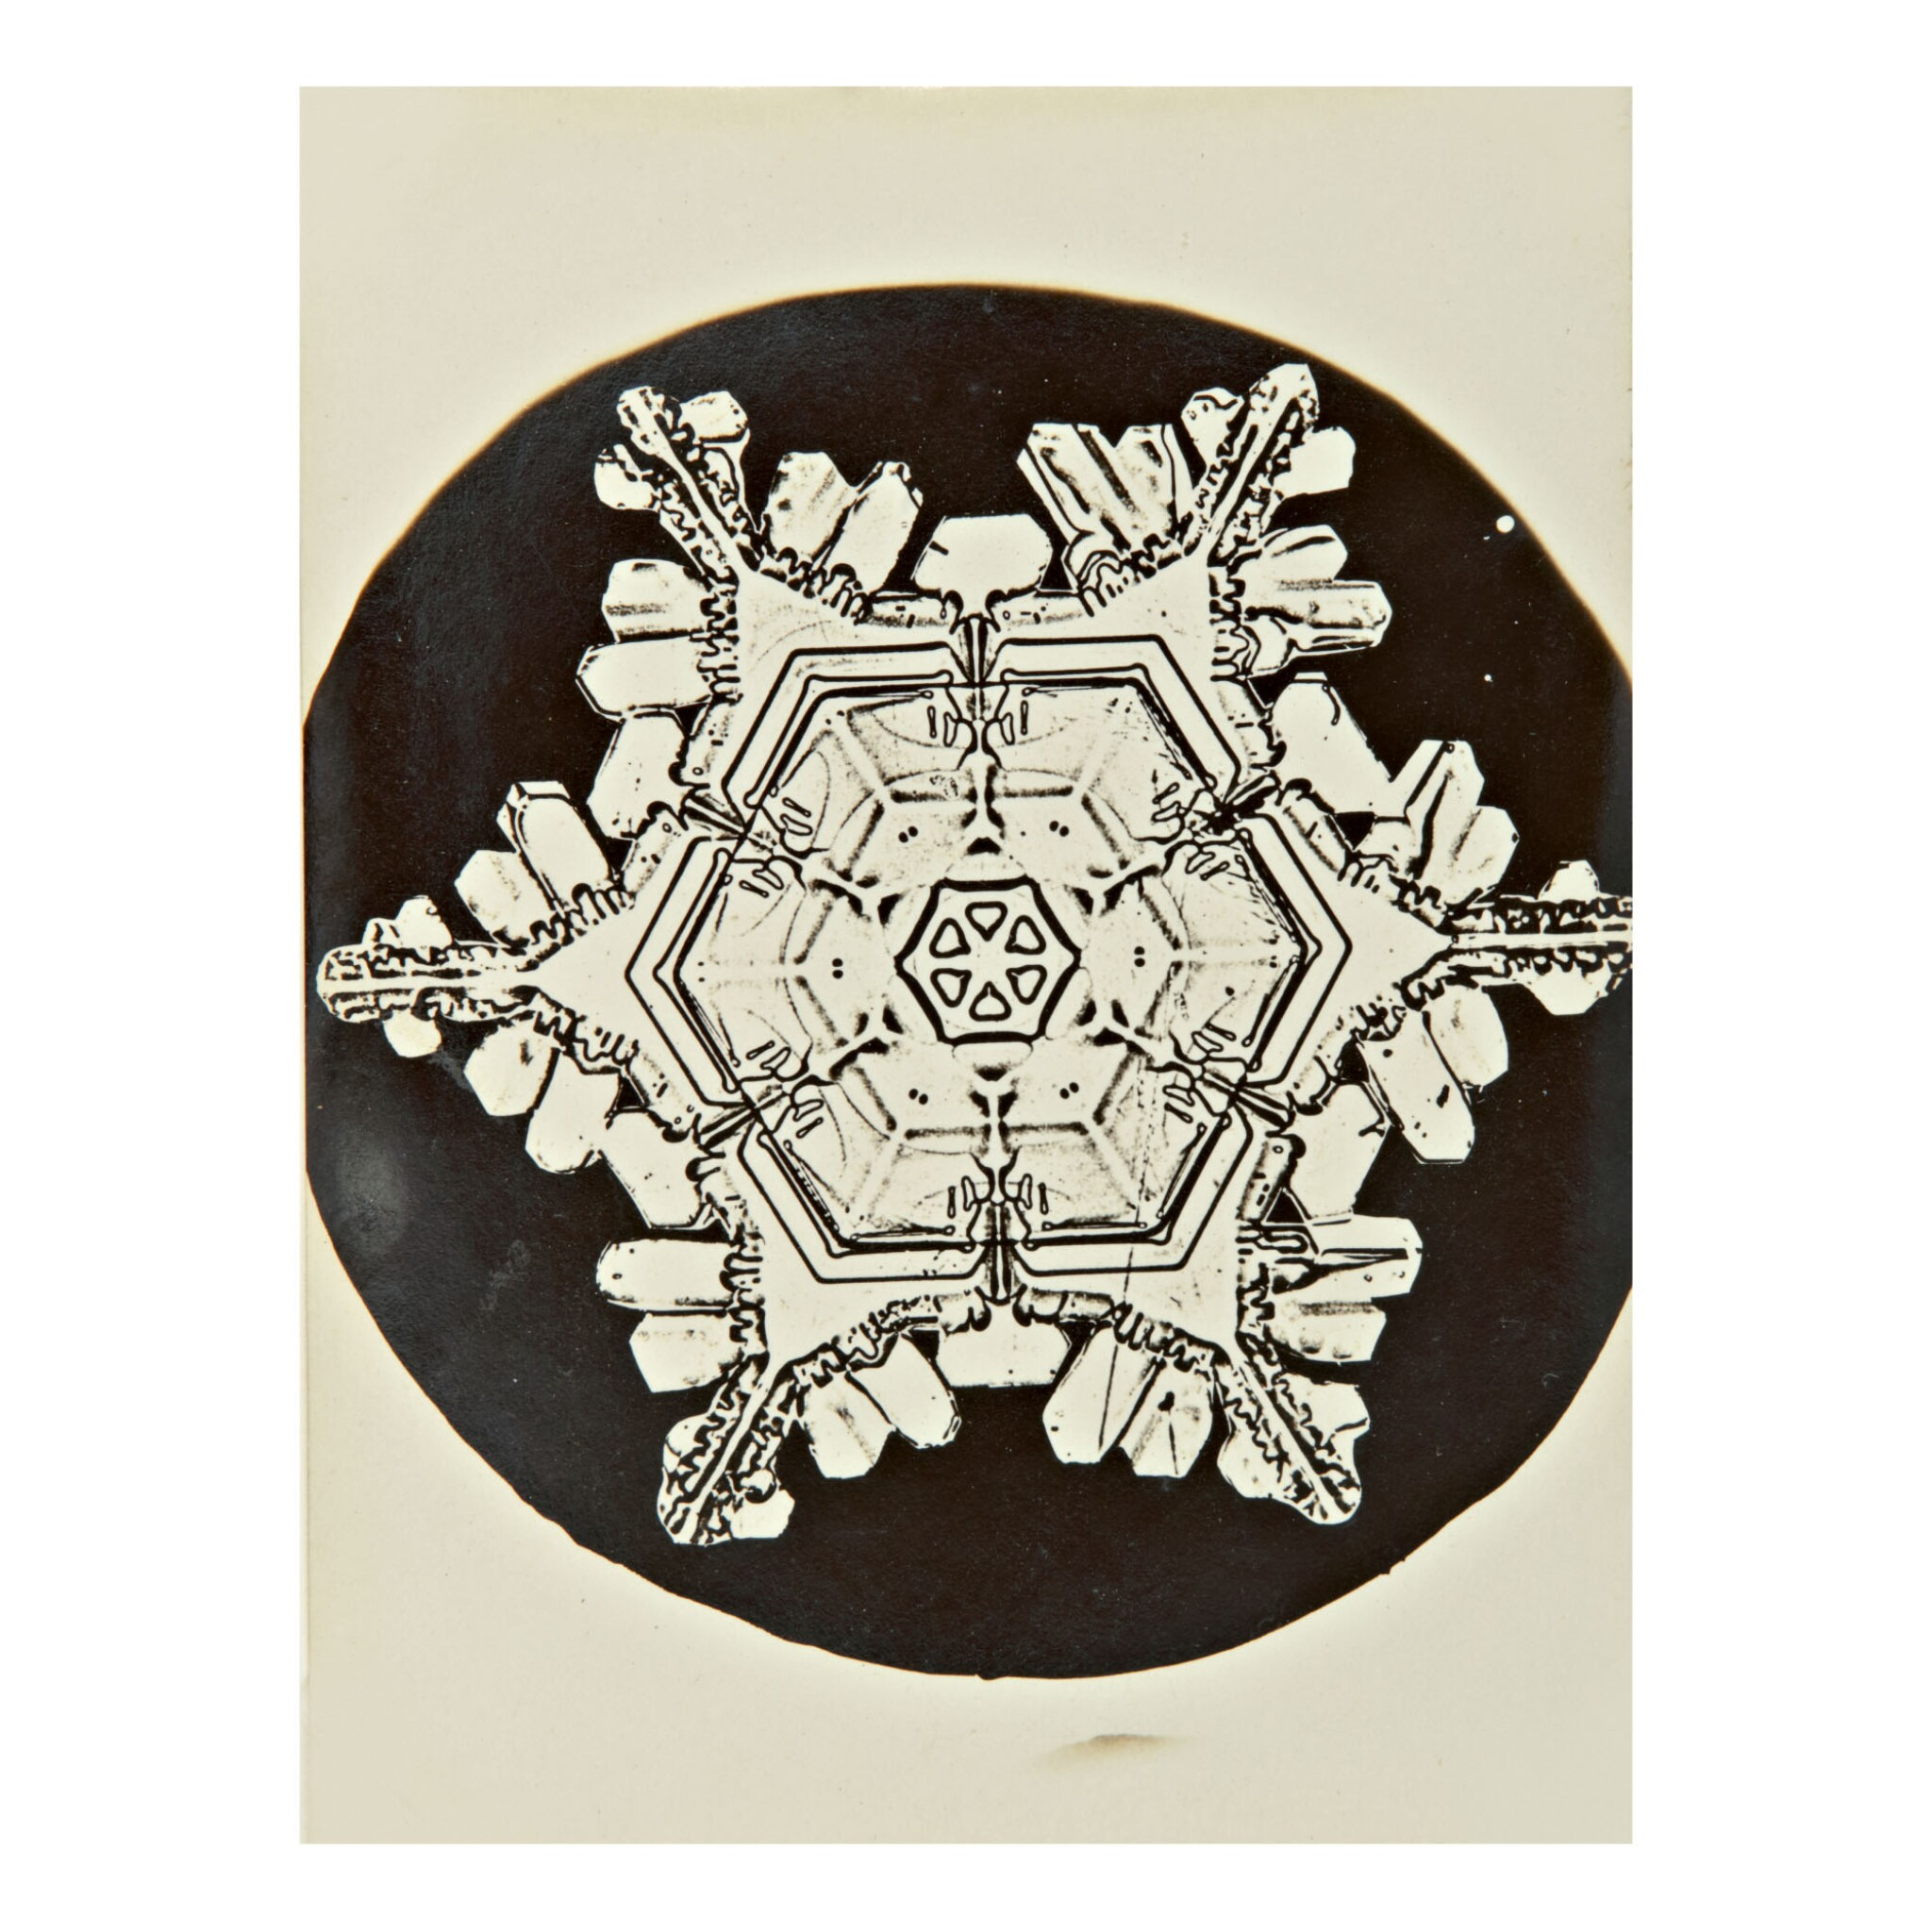 View 1 of Lot 142. WILSON A. BENTLEY | SELECTED IMAGES OF SNOWFLAKES.